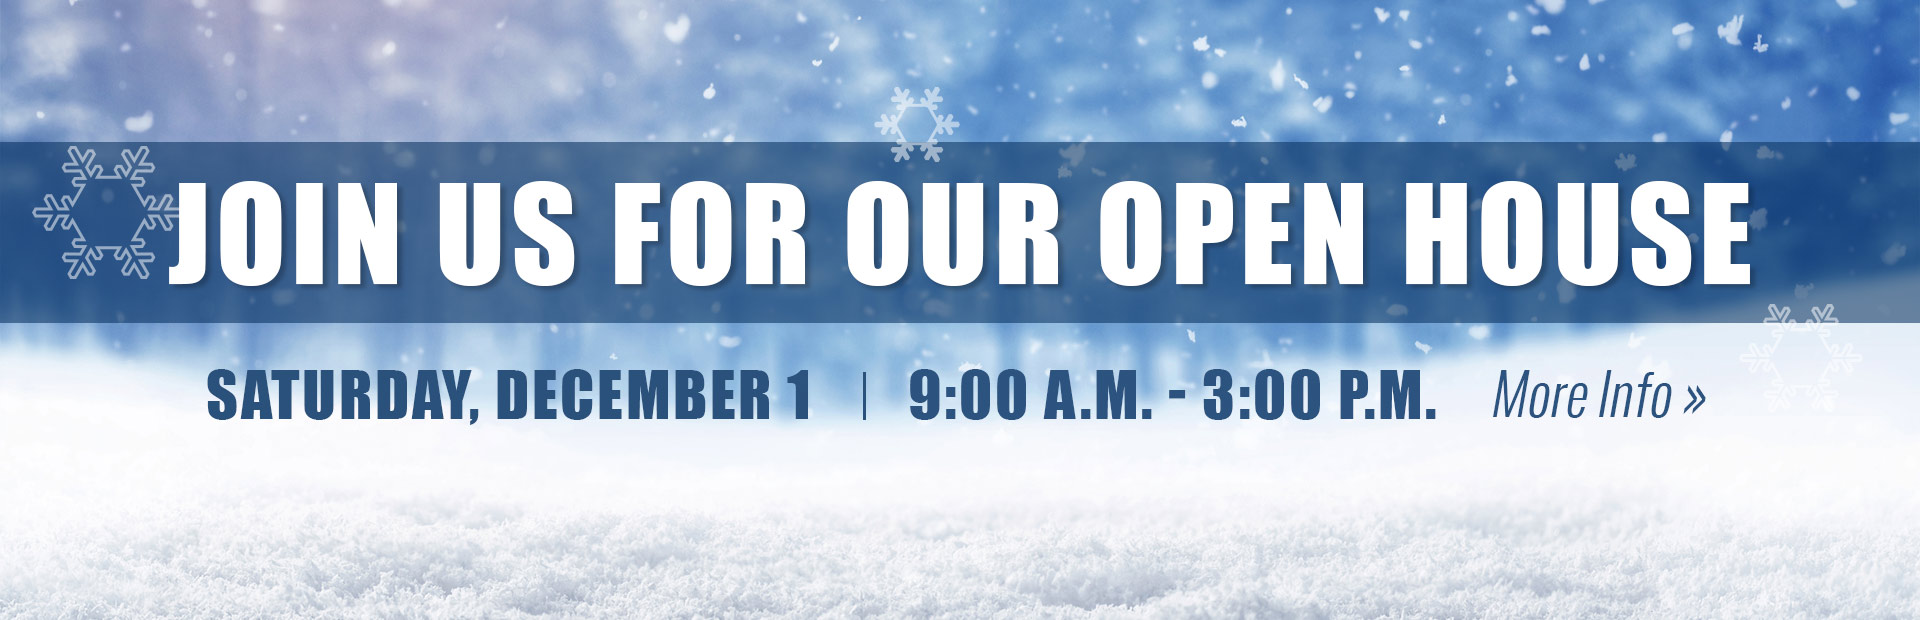 Join us Saturday, December 1 for our Open House! Click here for details.